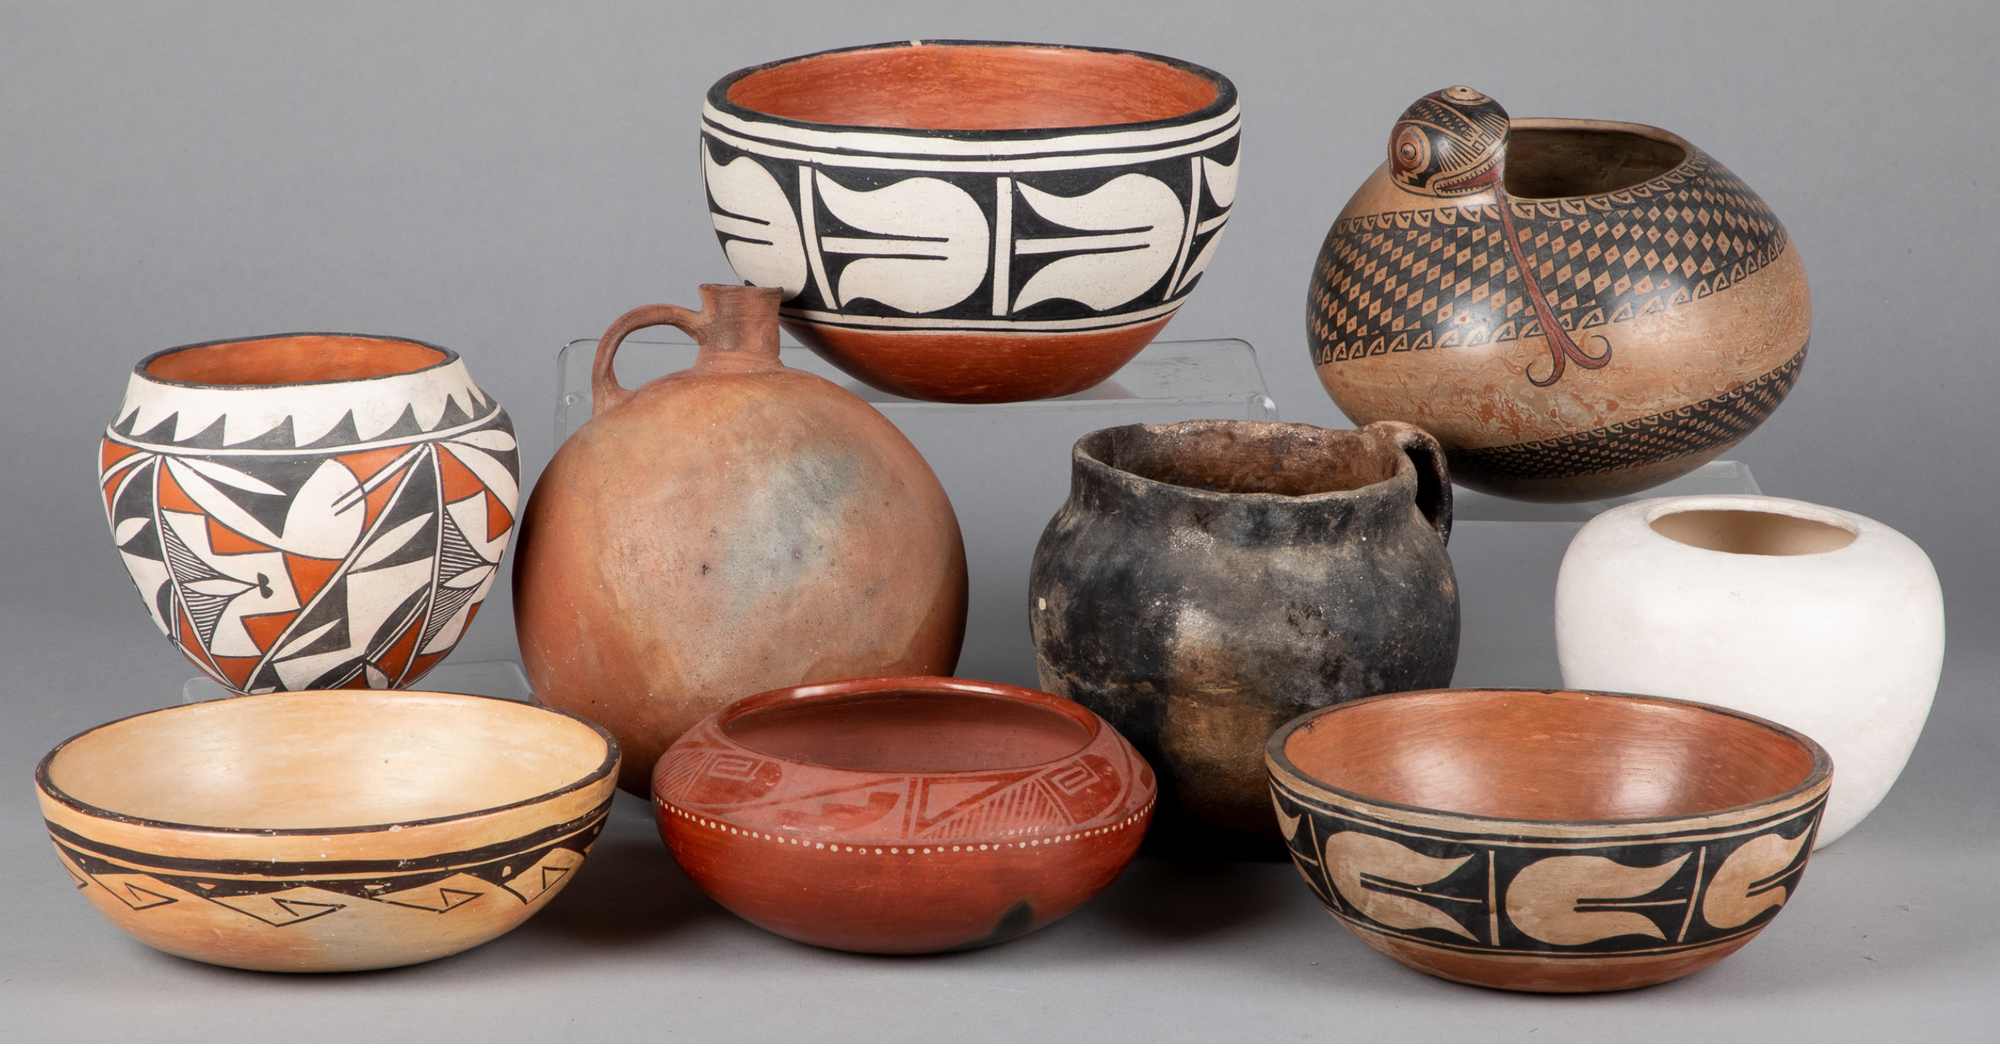 Tribal pottery vessels from Pook&Pook